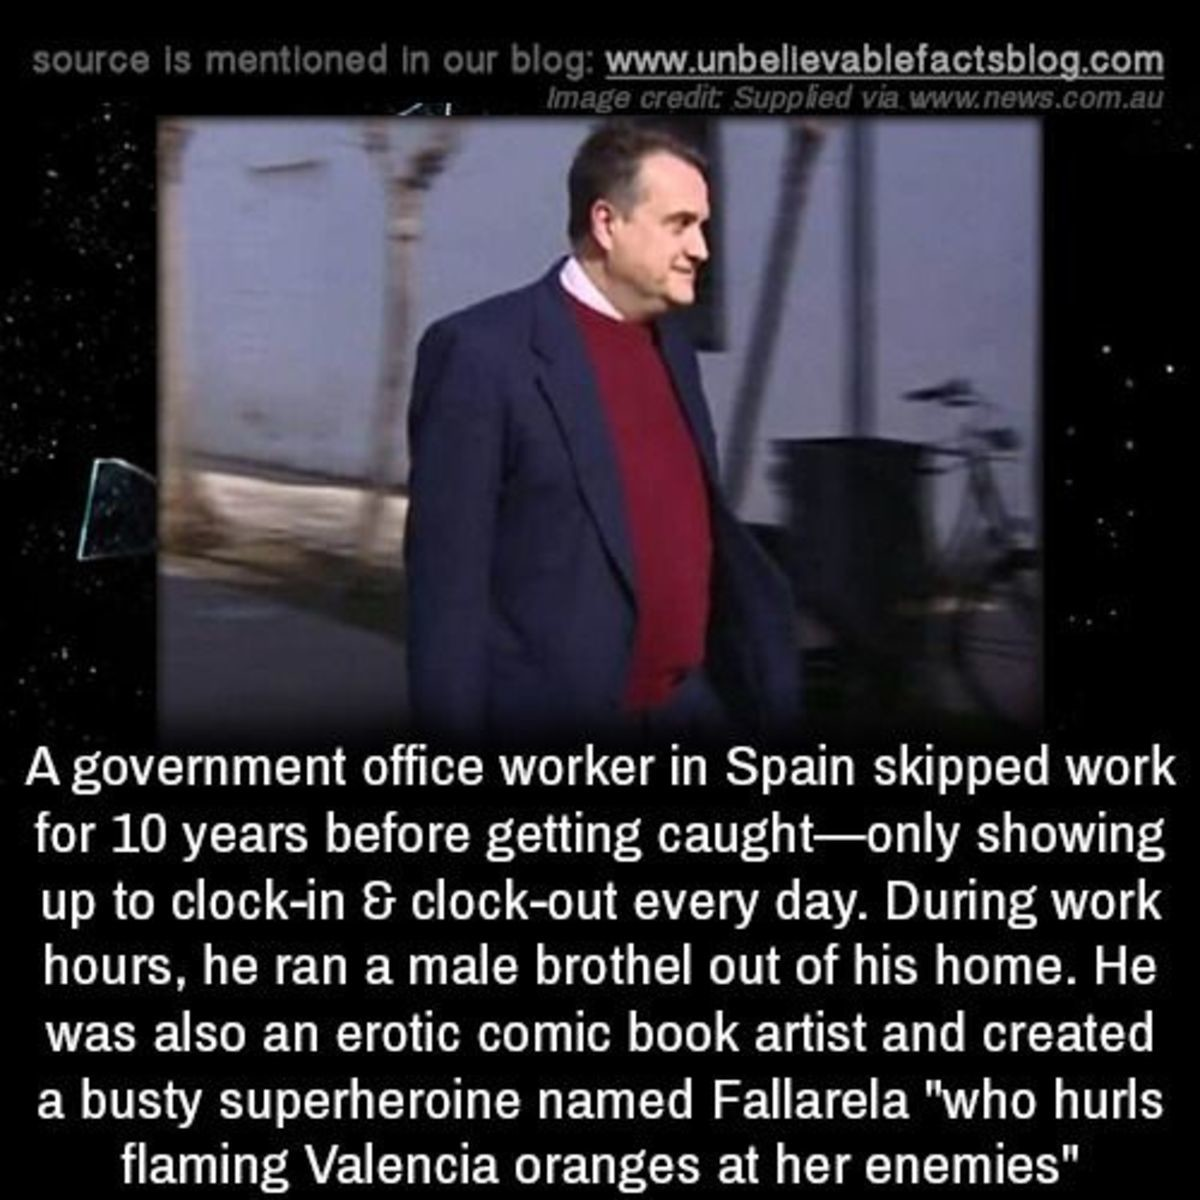 The Dream Life. .. the ideal government worker